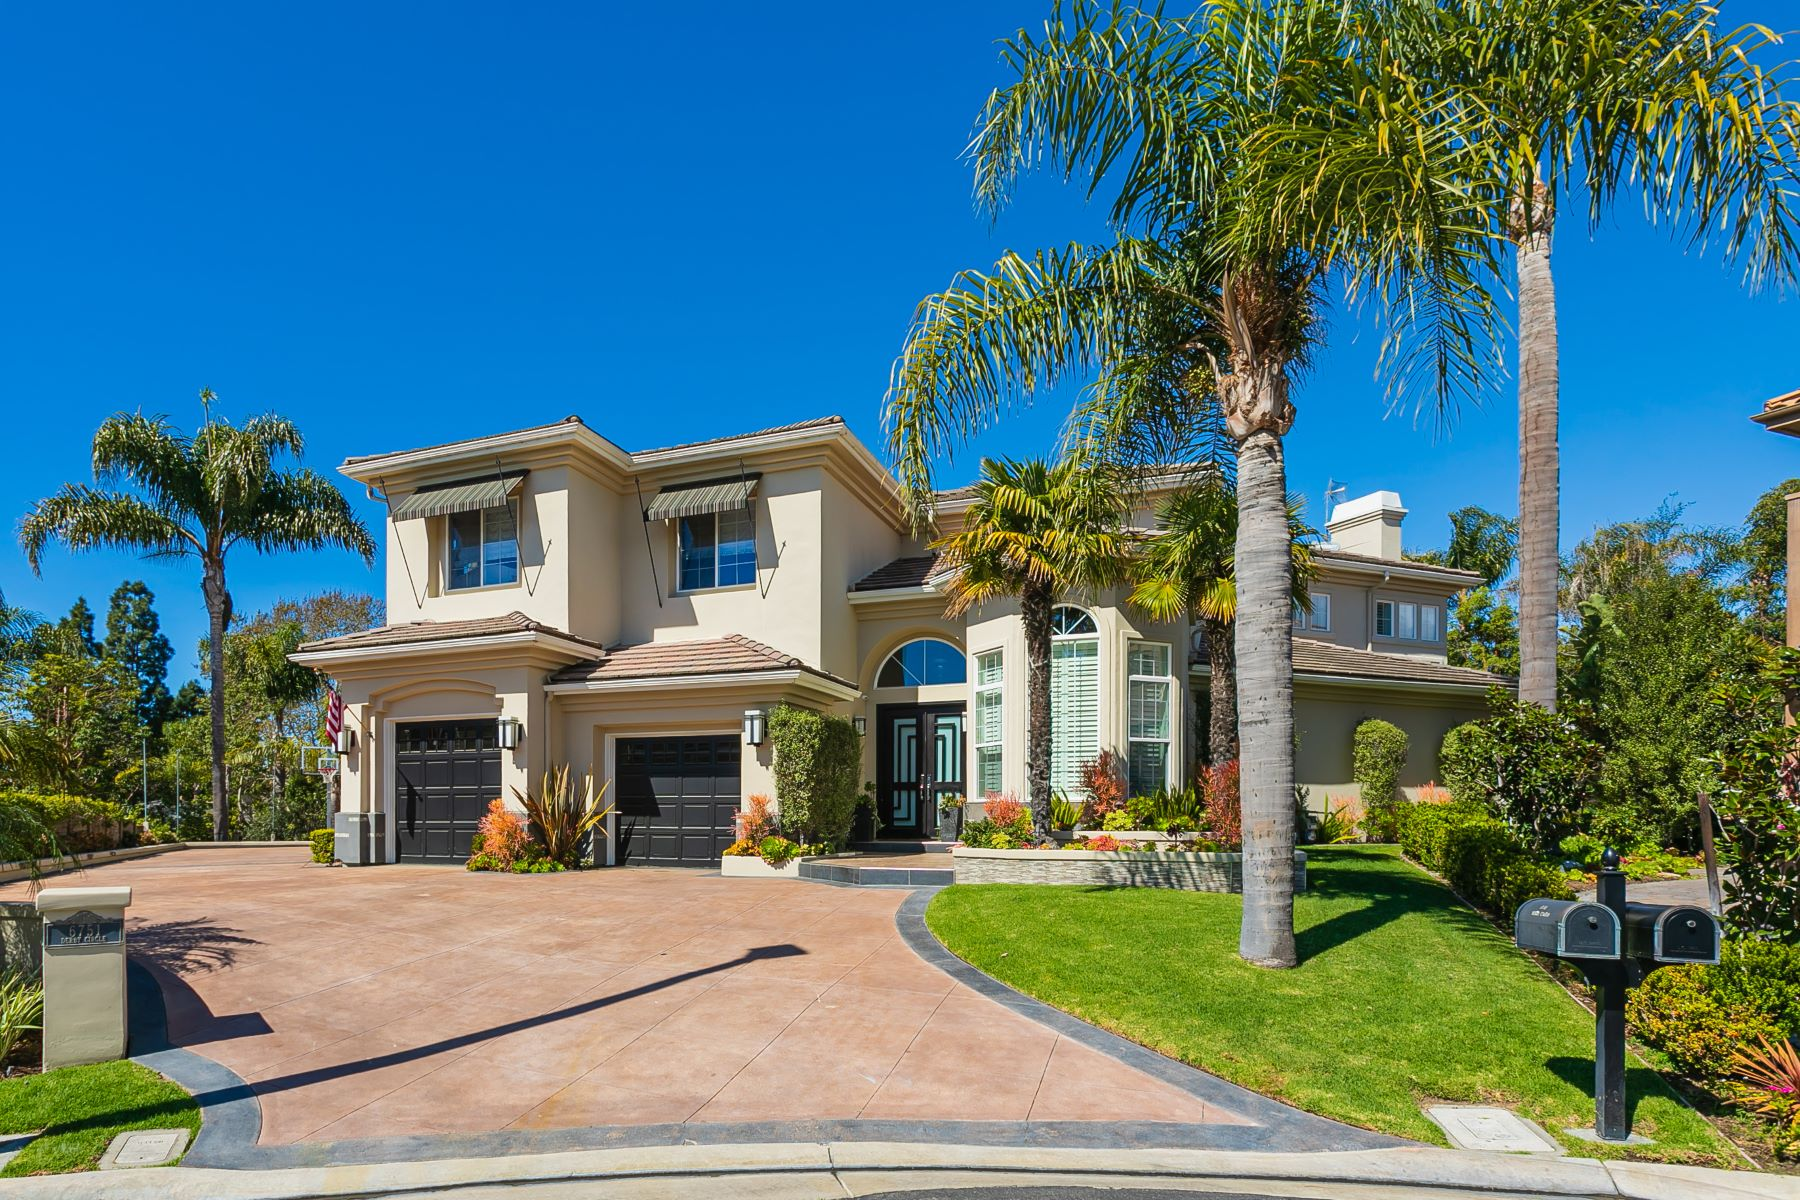 Single Family Homes for Sale at 6751 Derby Circle Huntington Beach, California 92648 United States